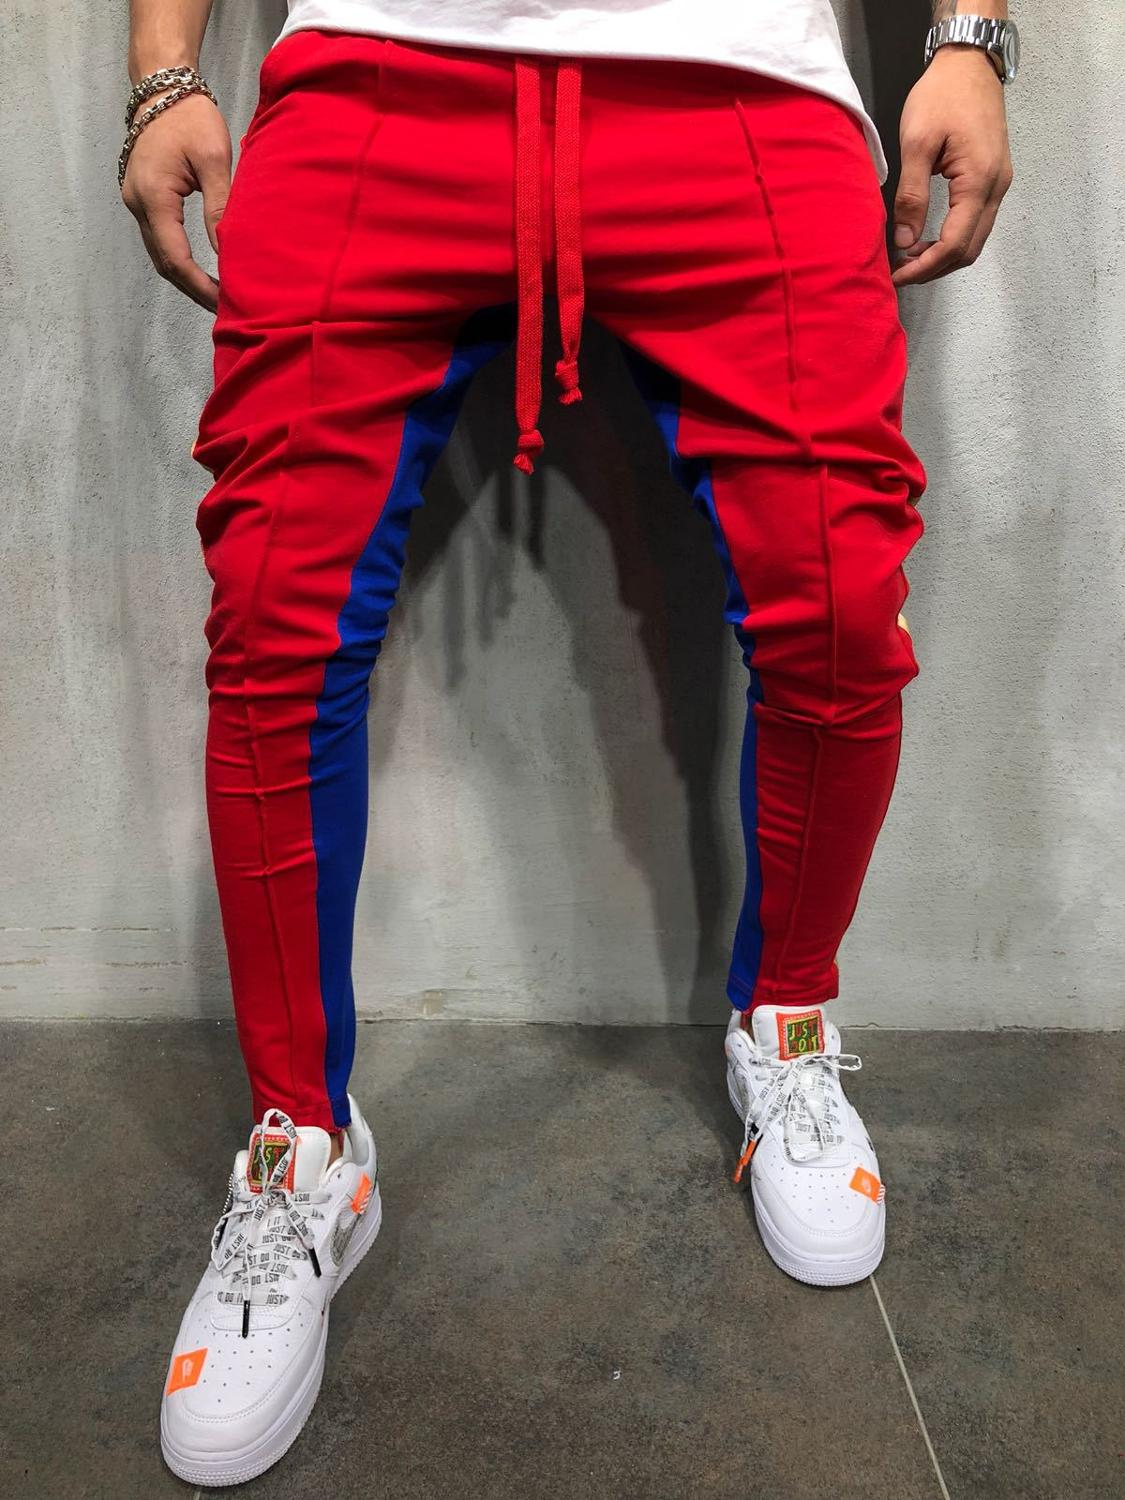 'Muscle Brother Color Hip-hop Little Foot Hot Style Men's Tether Casual Track Pants Full Length Pencil Pants